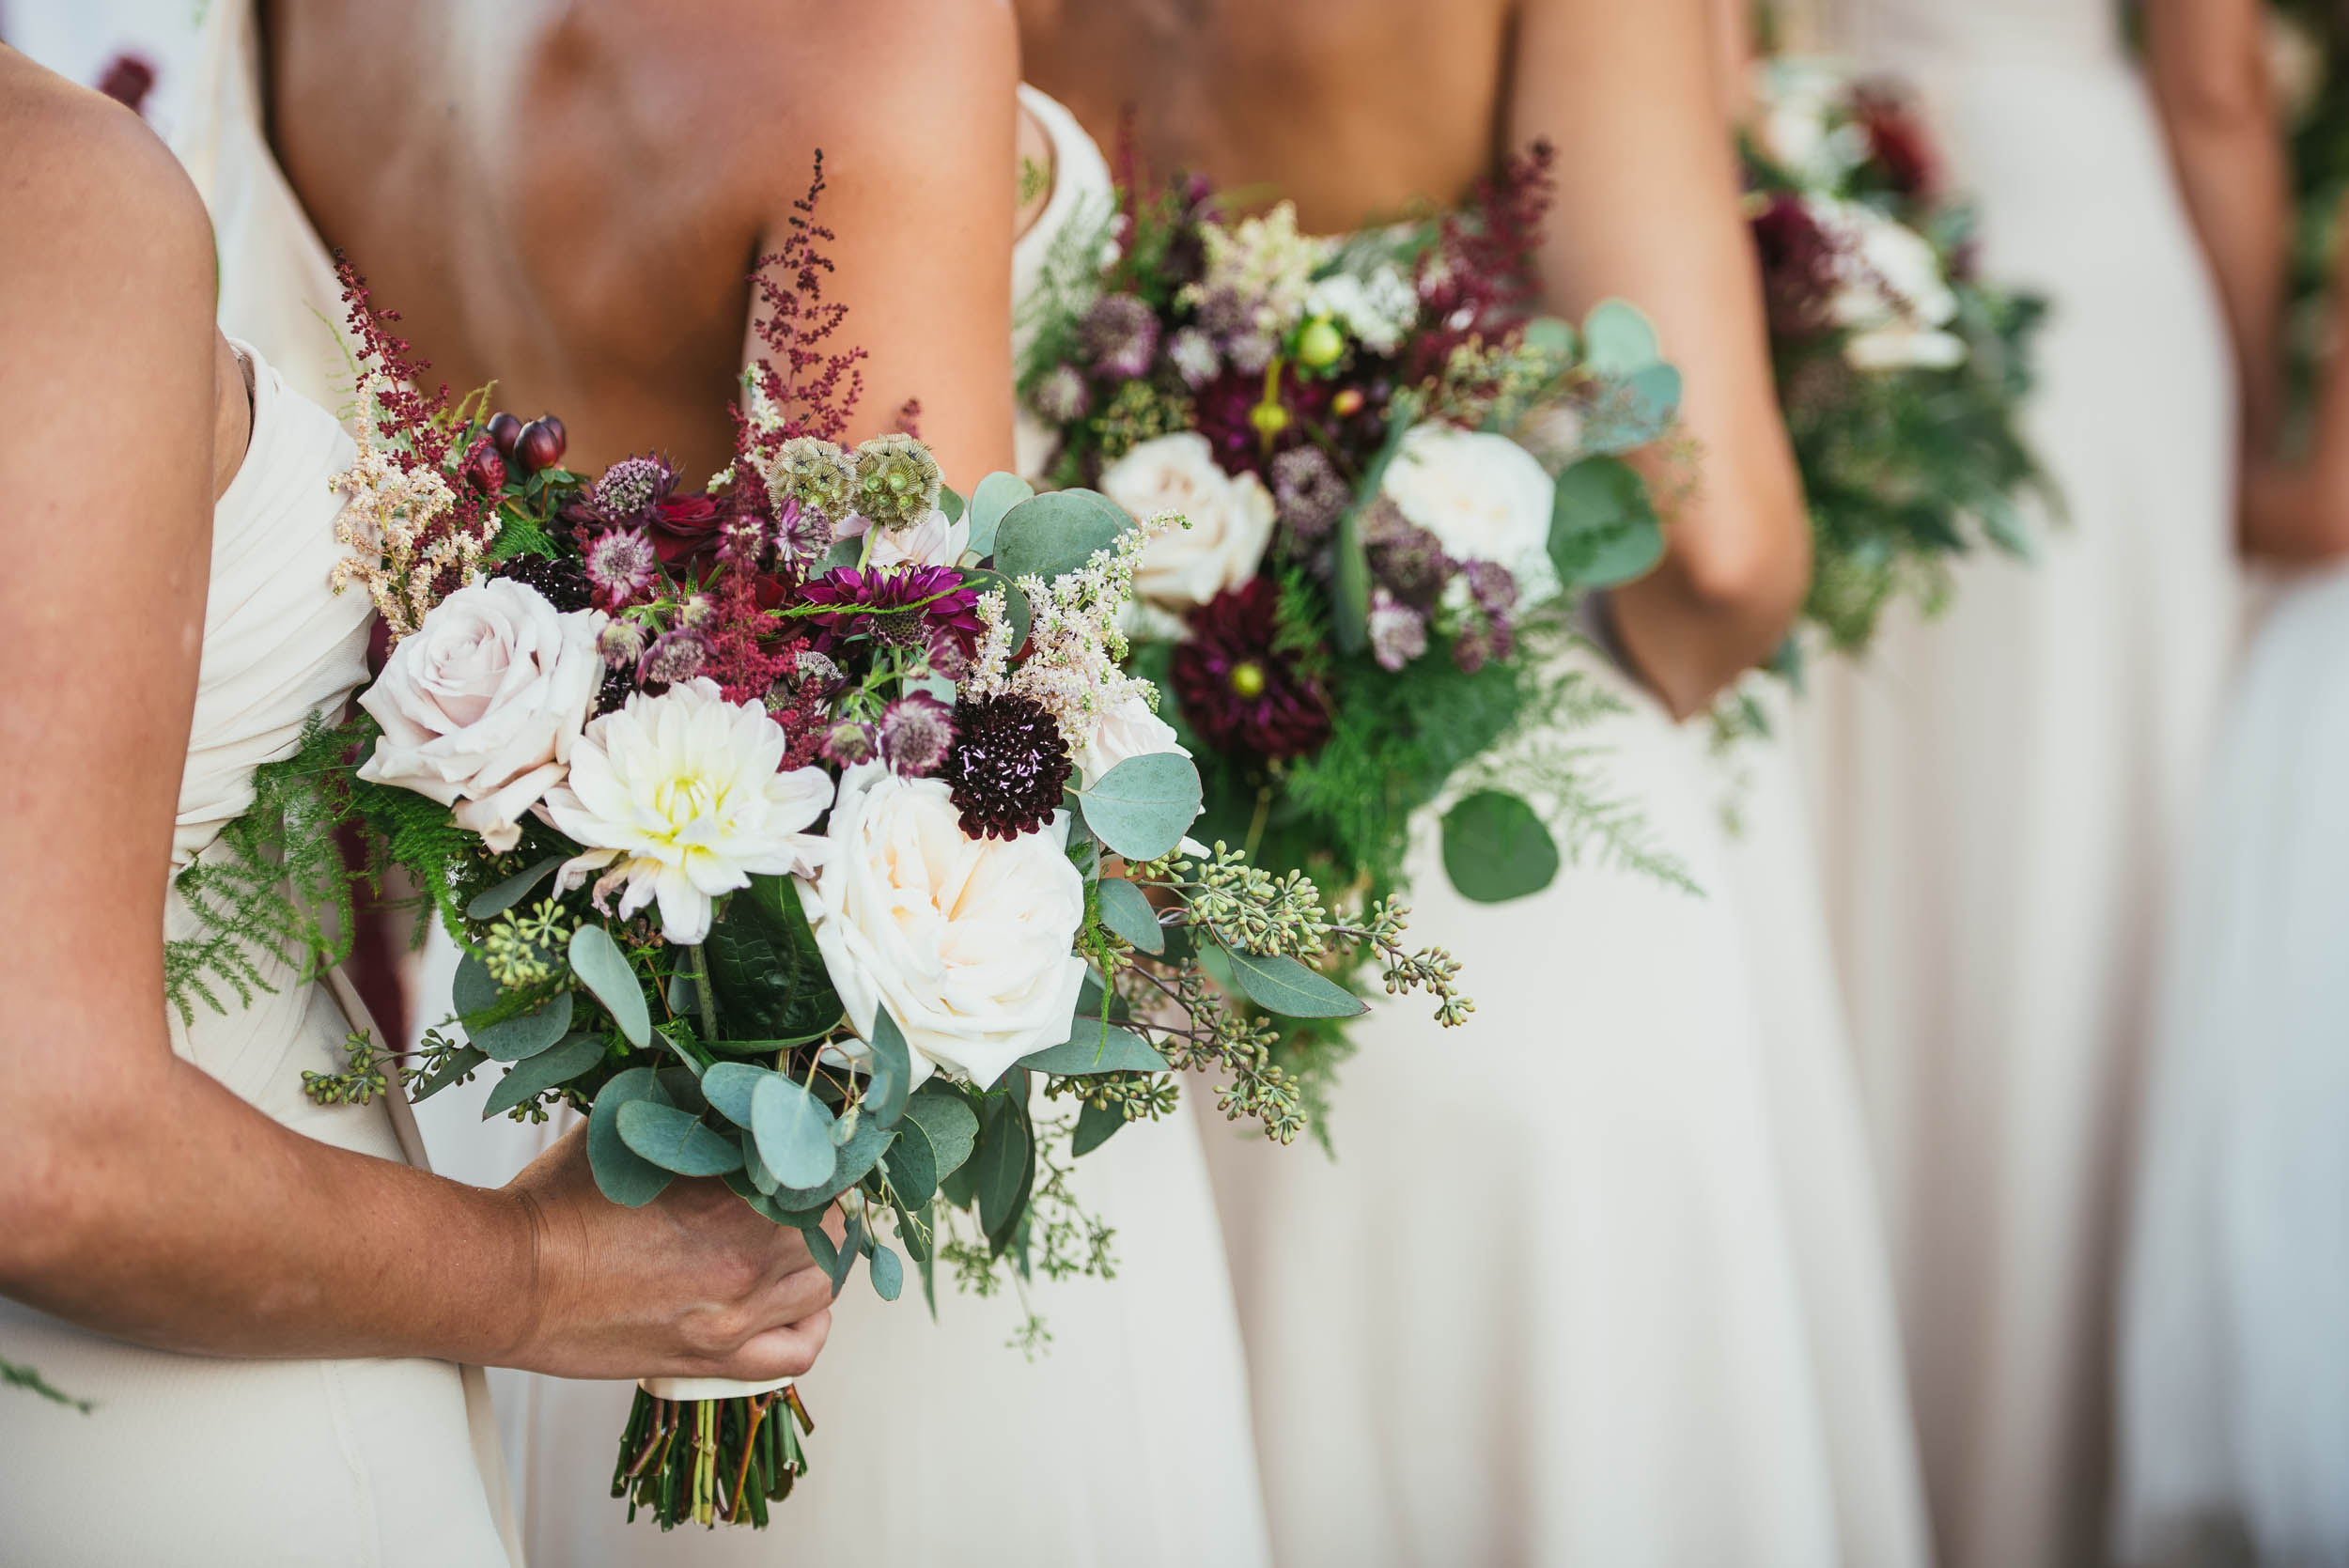 hengstenbergs-florist-kate-andrew-©in-focus-nyc-photography-12.jpg